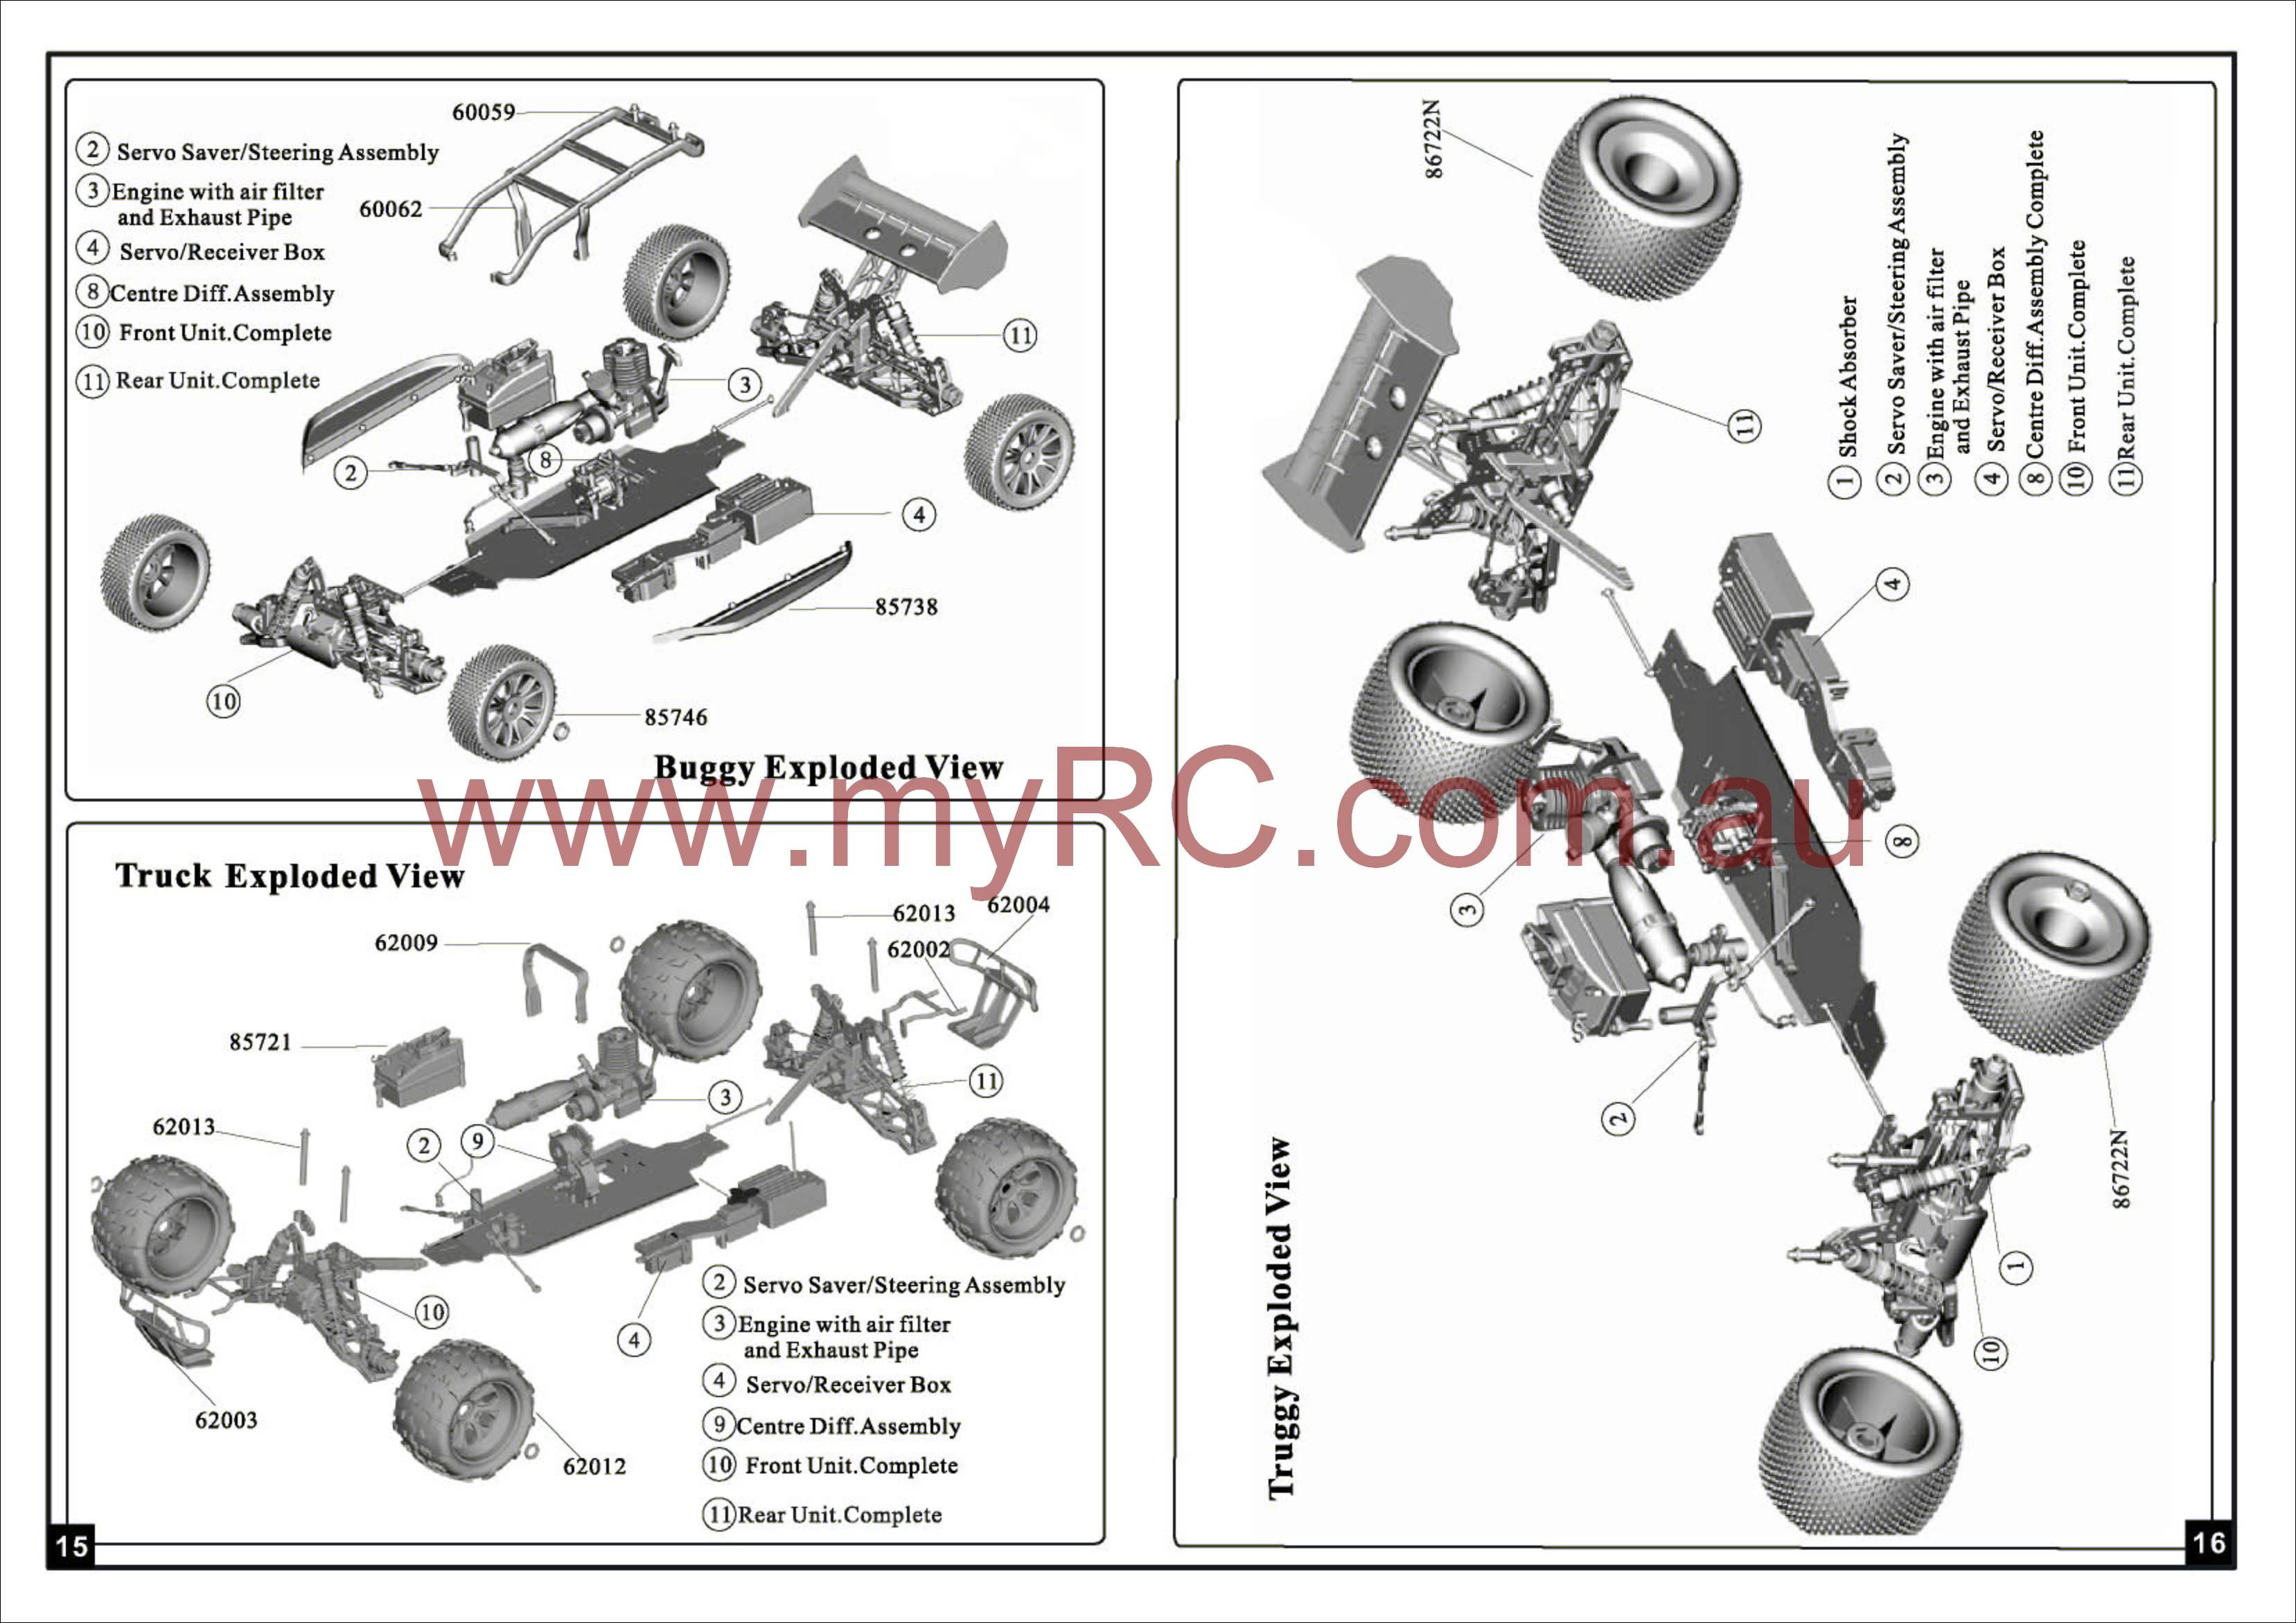 Auto Parts Diagram Manual Hsp 1 8n Road Car User Manual Free Download Myrc Of Auto Parts Diagram Manual